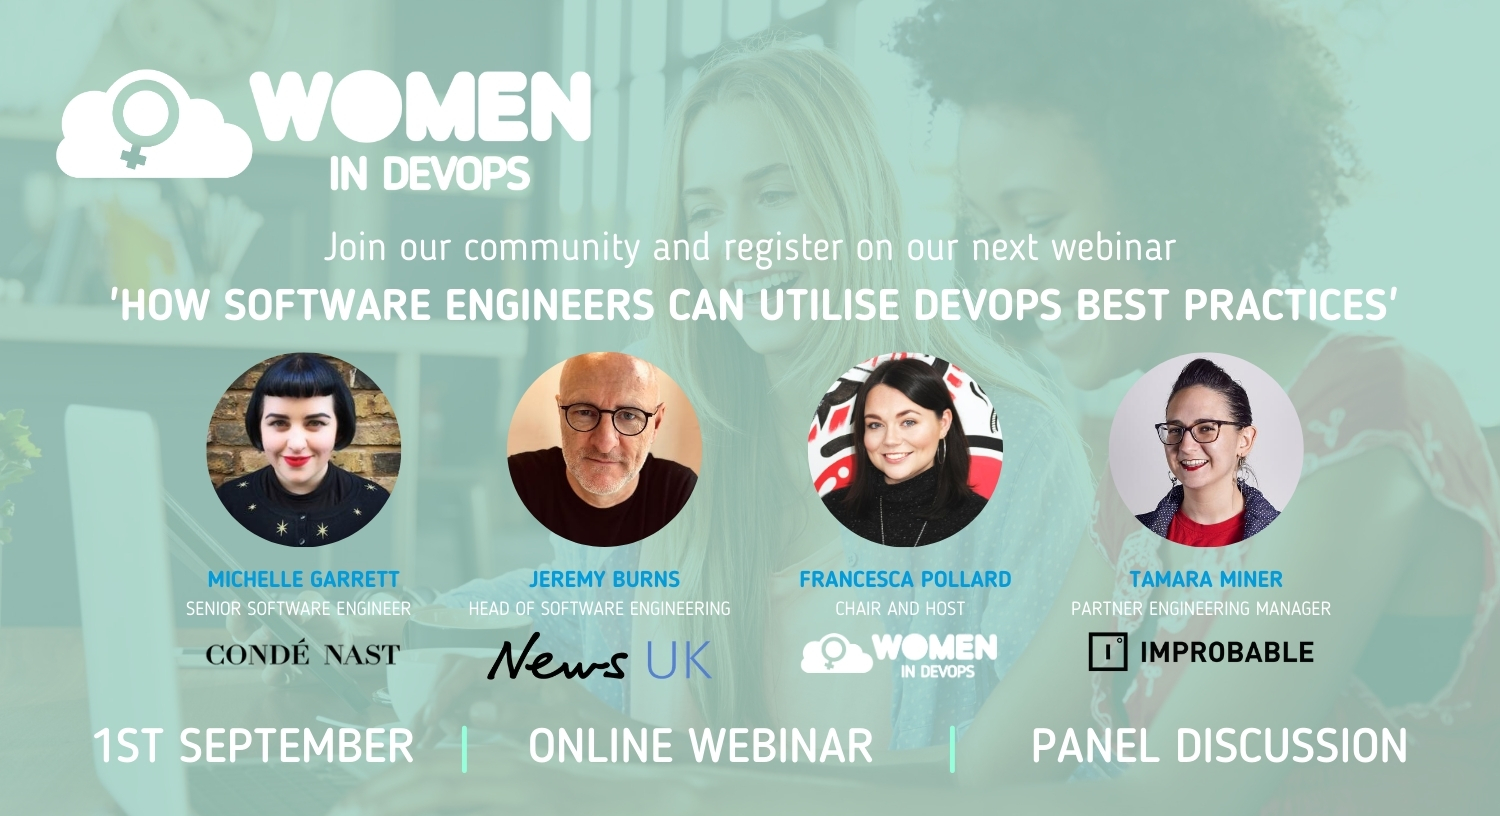 Webinar #5 - 'How Software Engineers can utilise DevOps best practices'